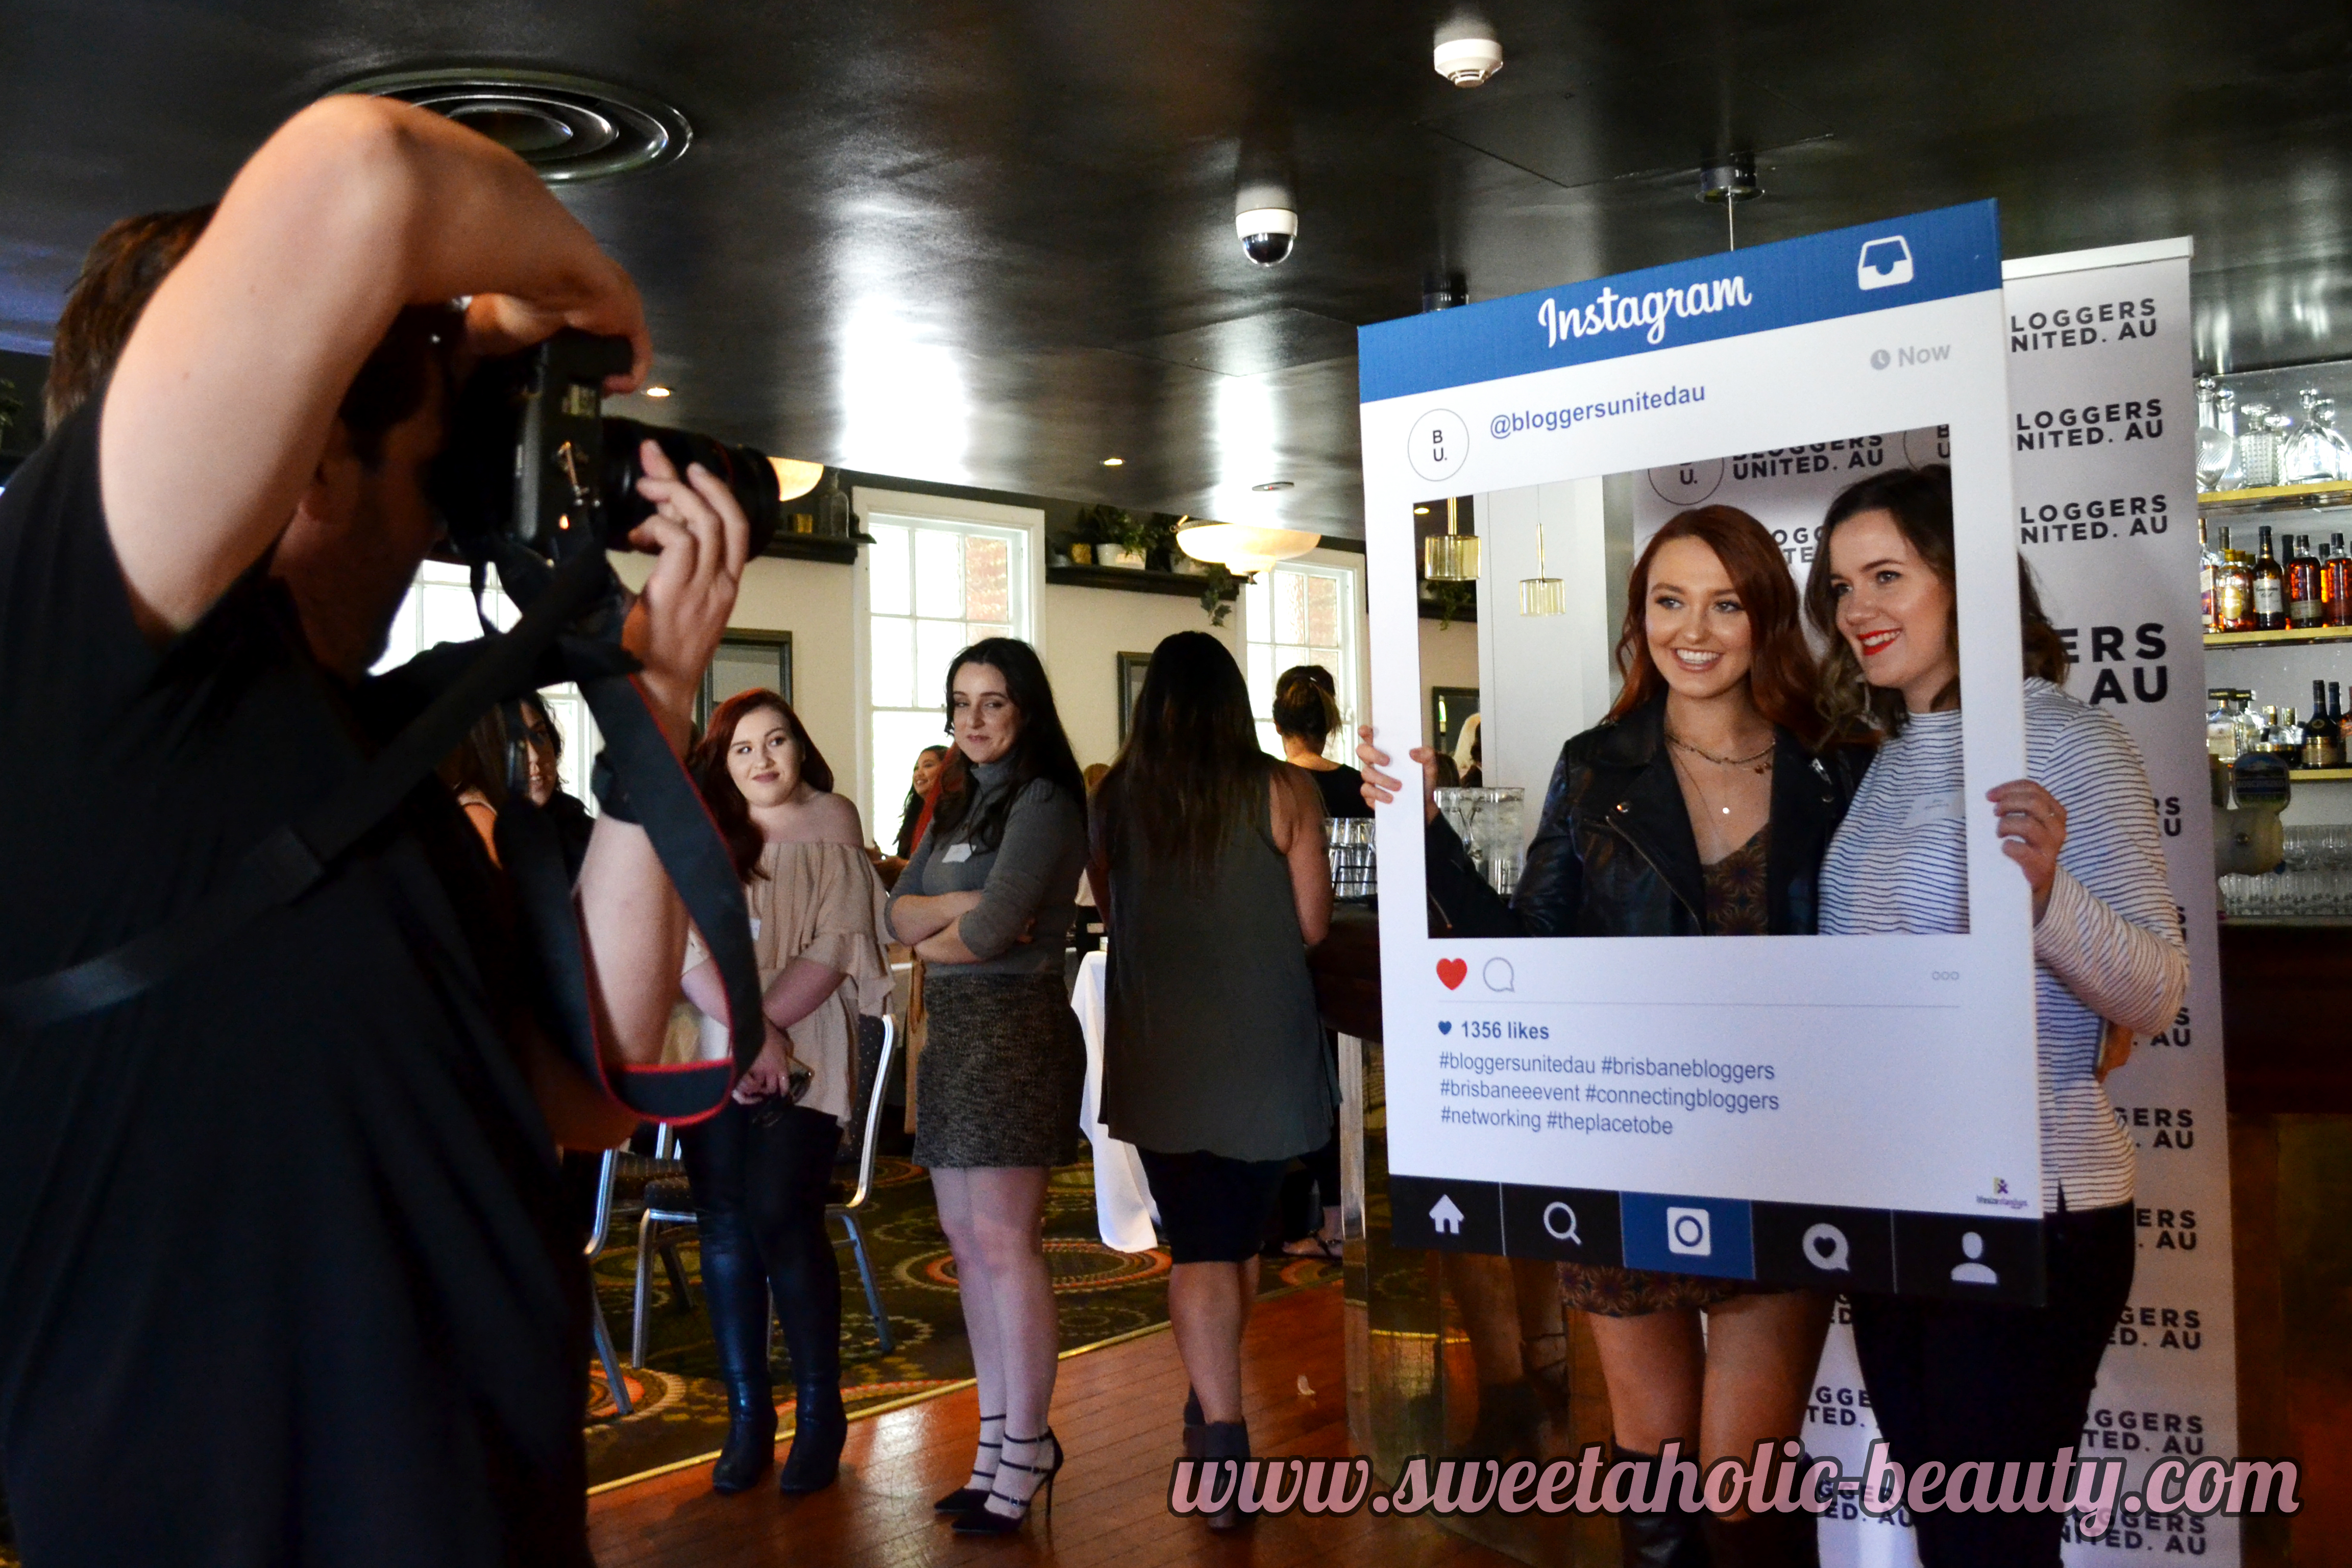 Bloggers United AU Brisbane Event Recap - Sweetaholic Beauty